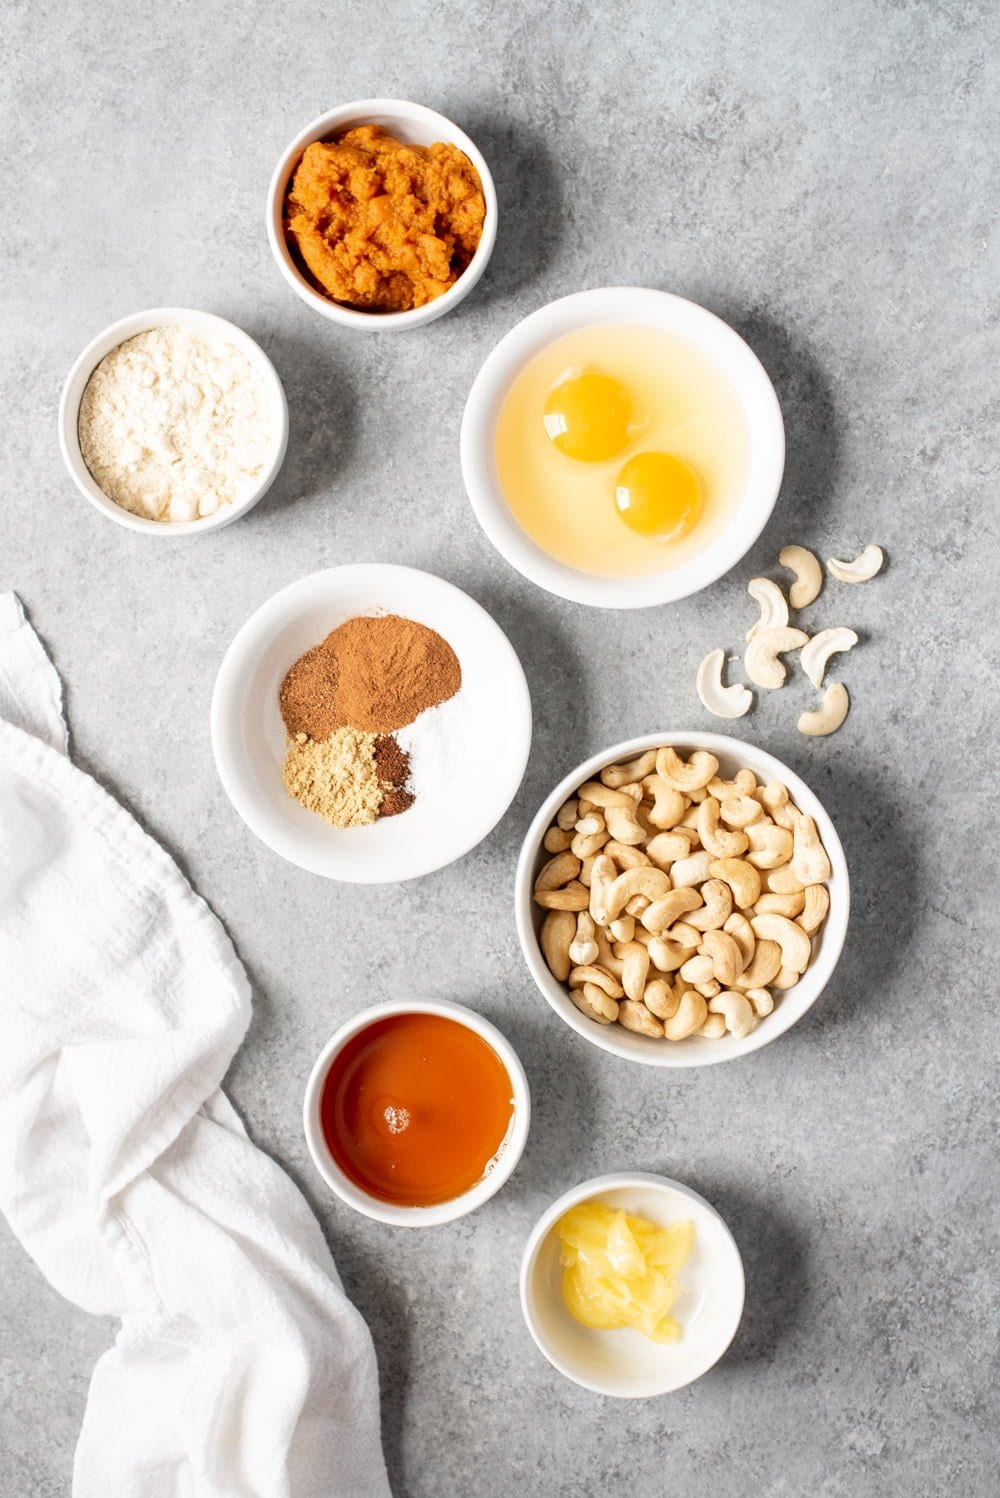 Ingredients for Grain-Free Pumpkin Bread in individual white bowls - pumpkin, cashews, spices, eggs, coconut flour